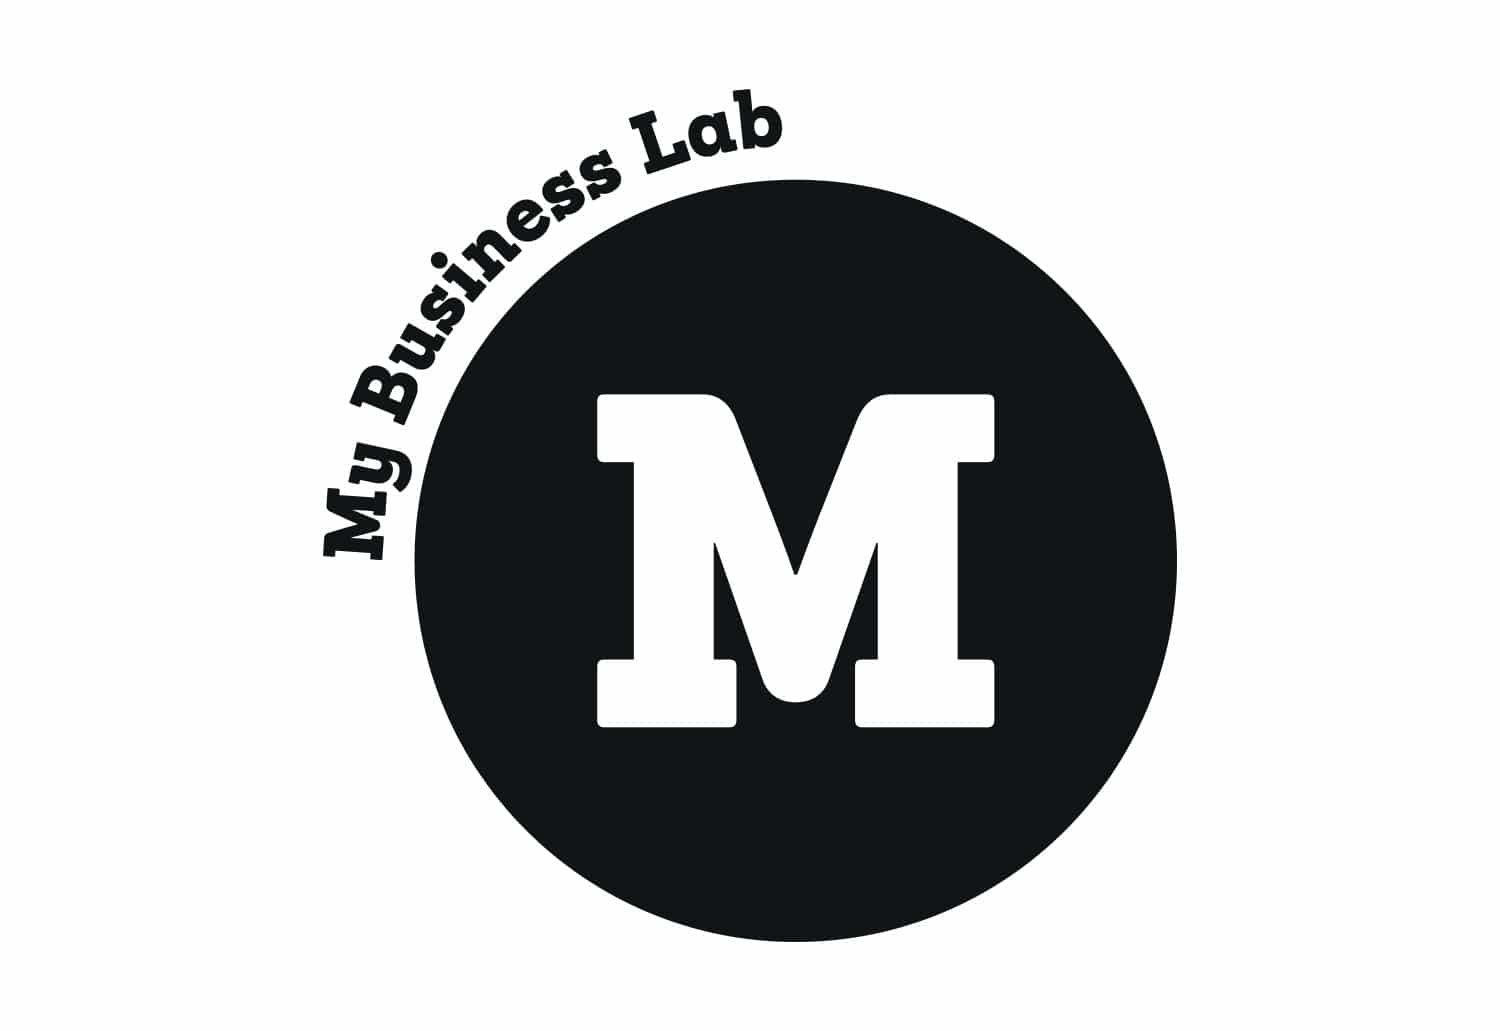 MyBusinessLab by GRENKE